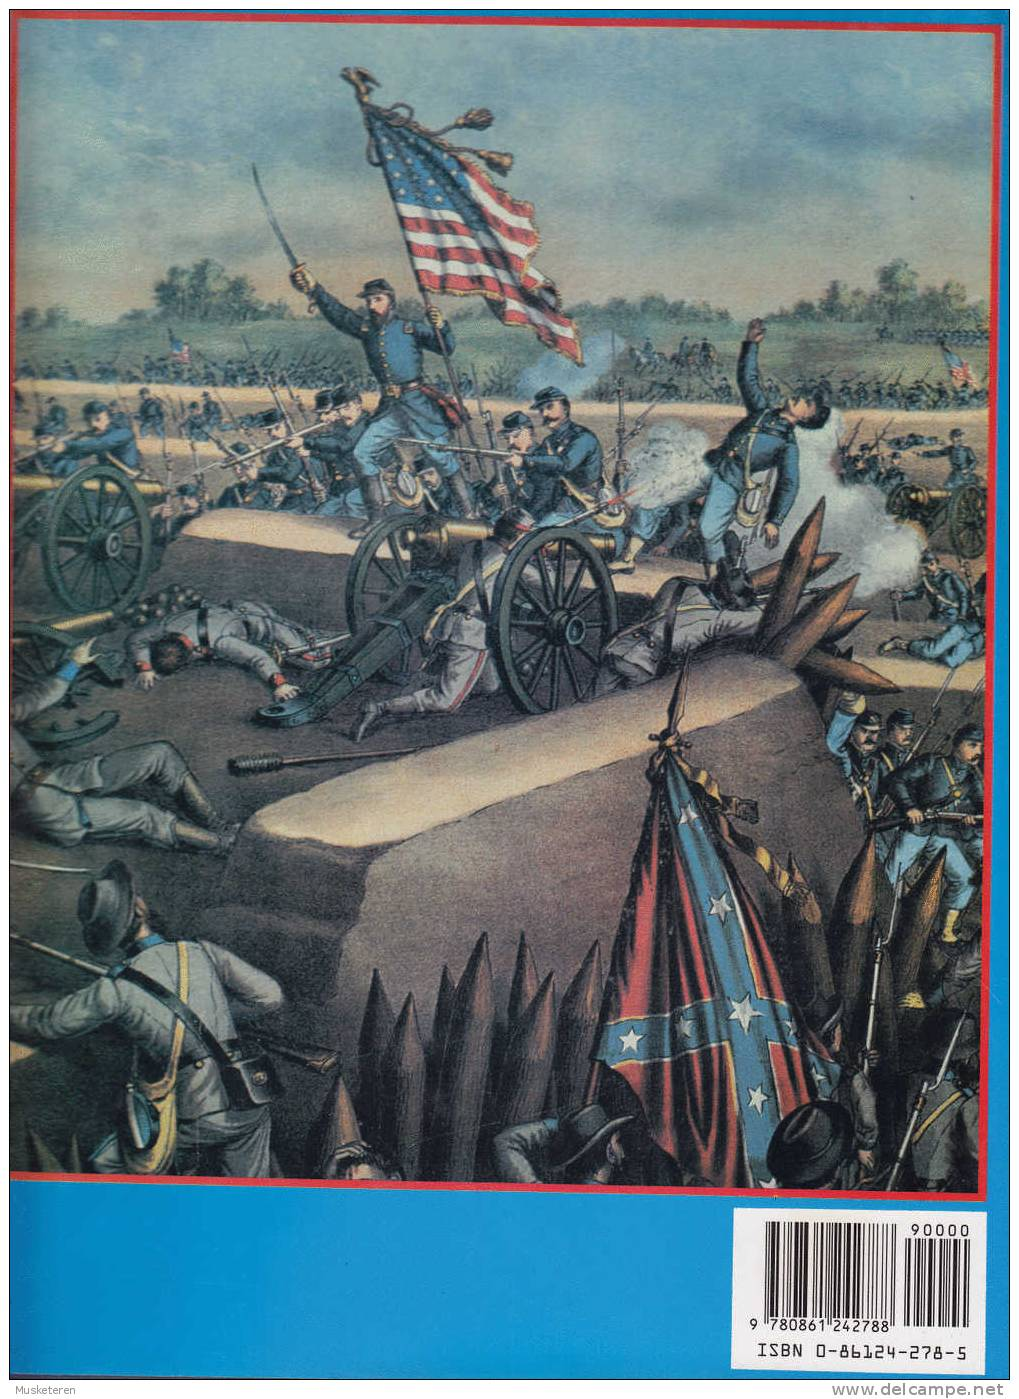 History Of The US ARMY By James M. Morris - Forces Armées Américaines